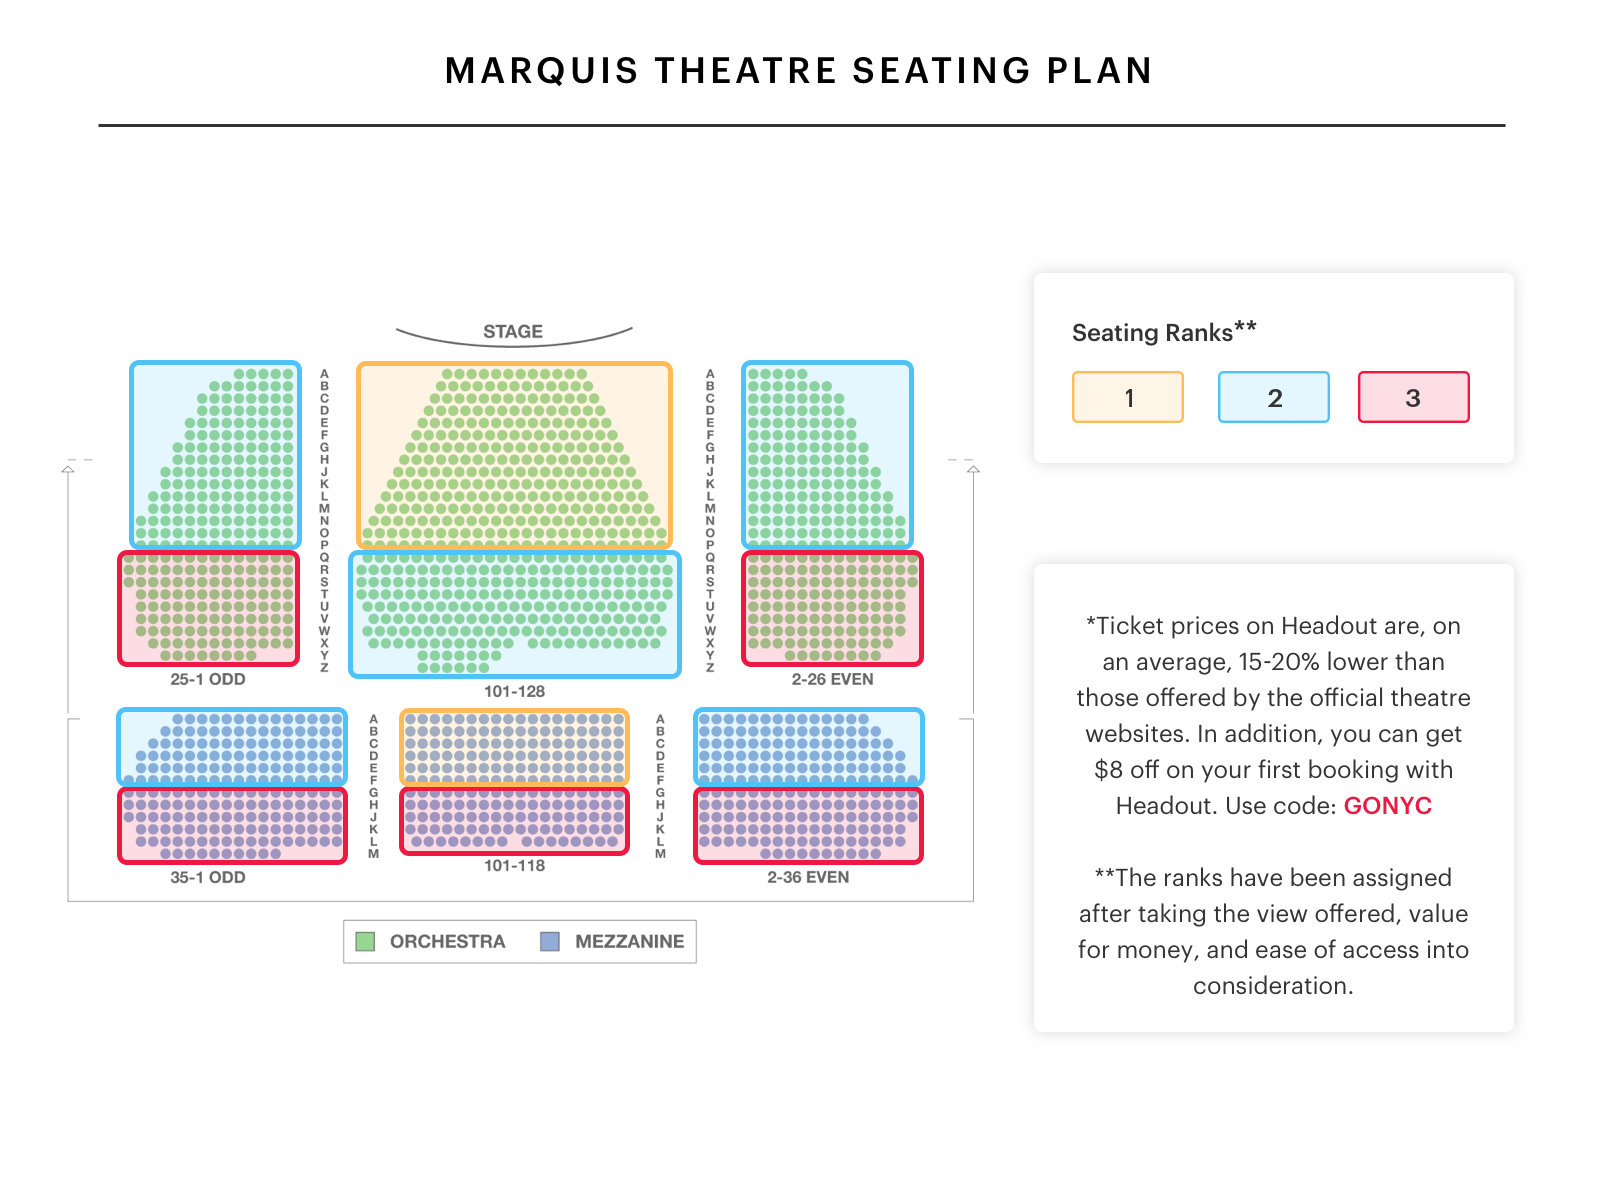 Marquis theatre seating chart escape to margaritaville seating guide